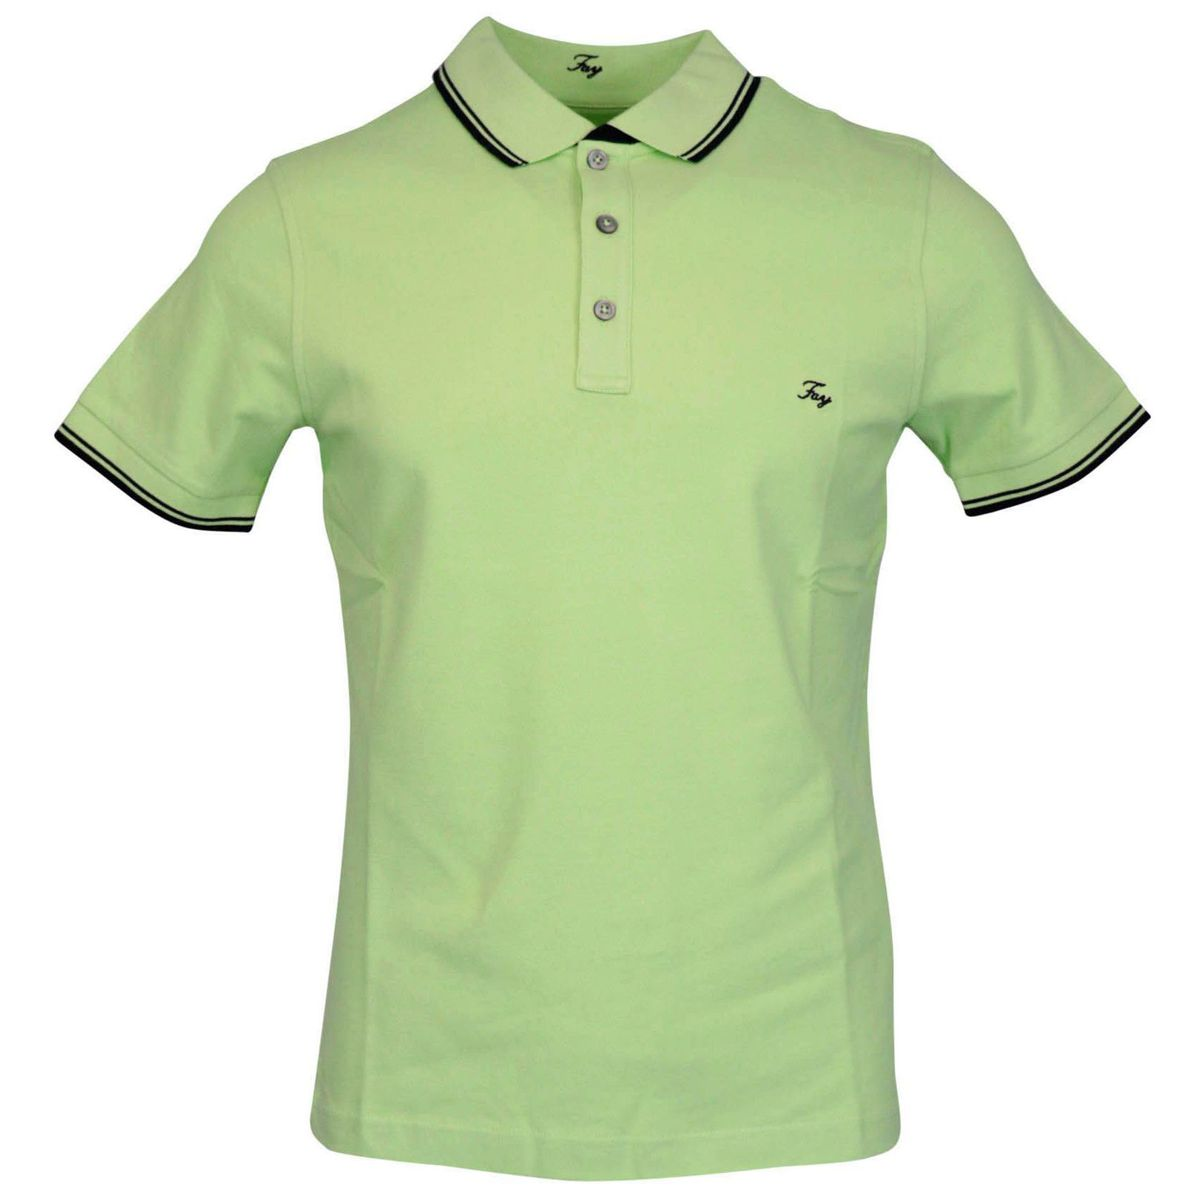 Three button stretch cotton polo shirt with logo embroidery Green Fay